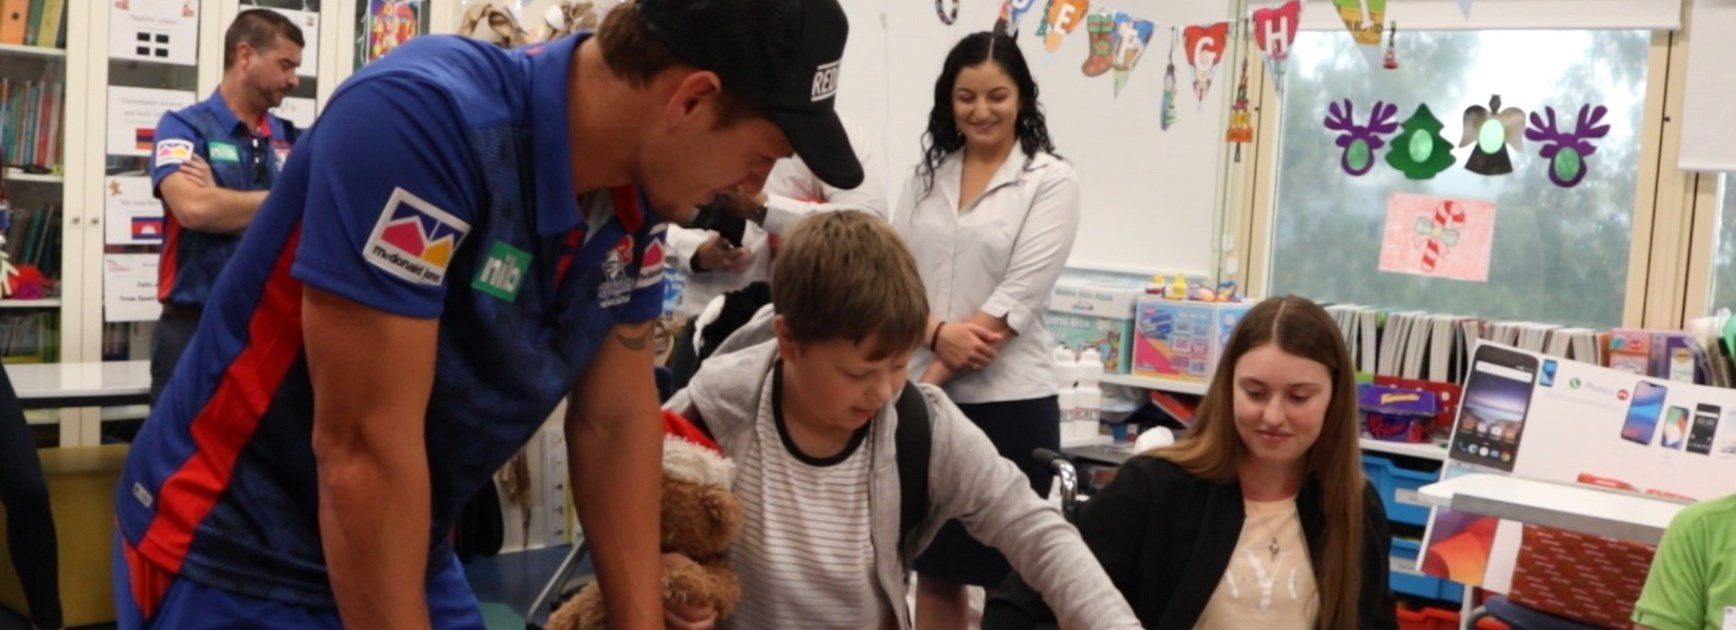 Ponga puts smiles on faces at Children's hospital